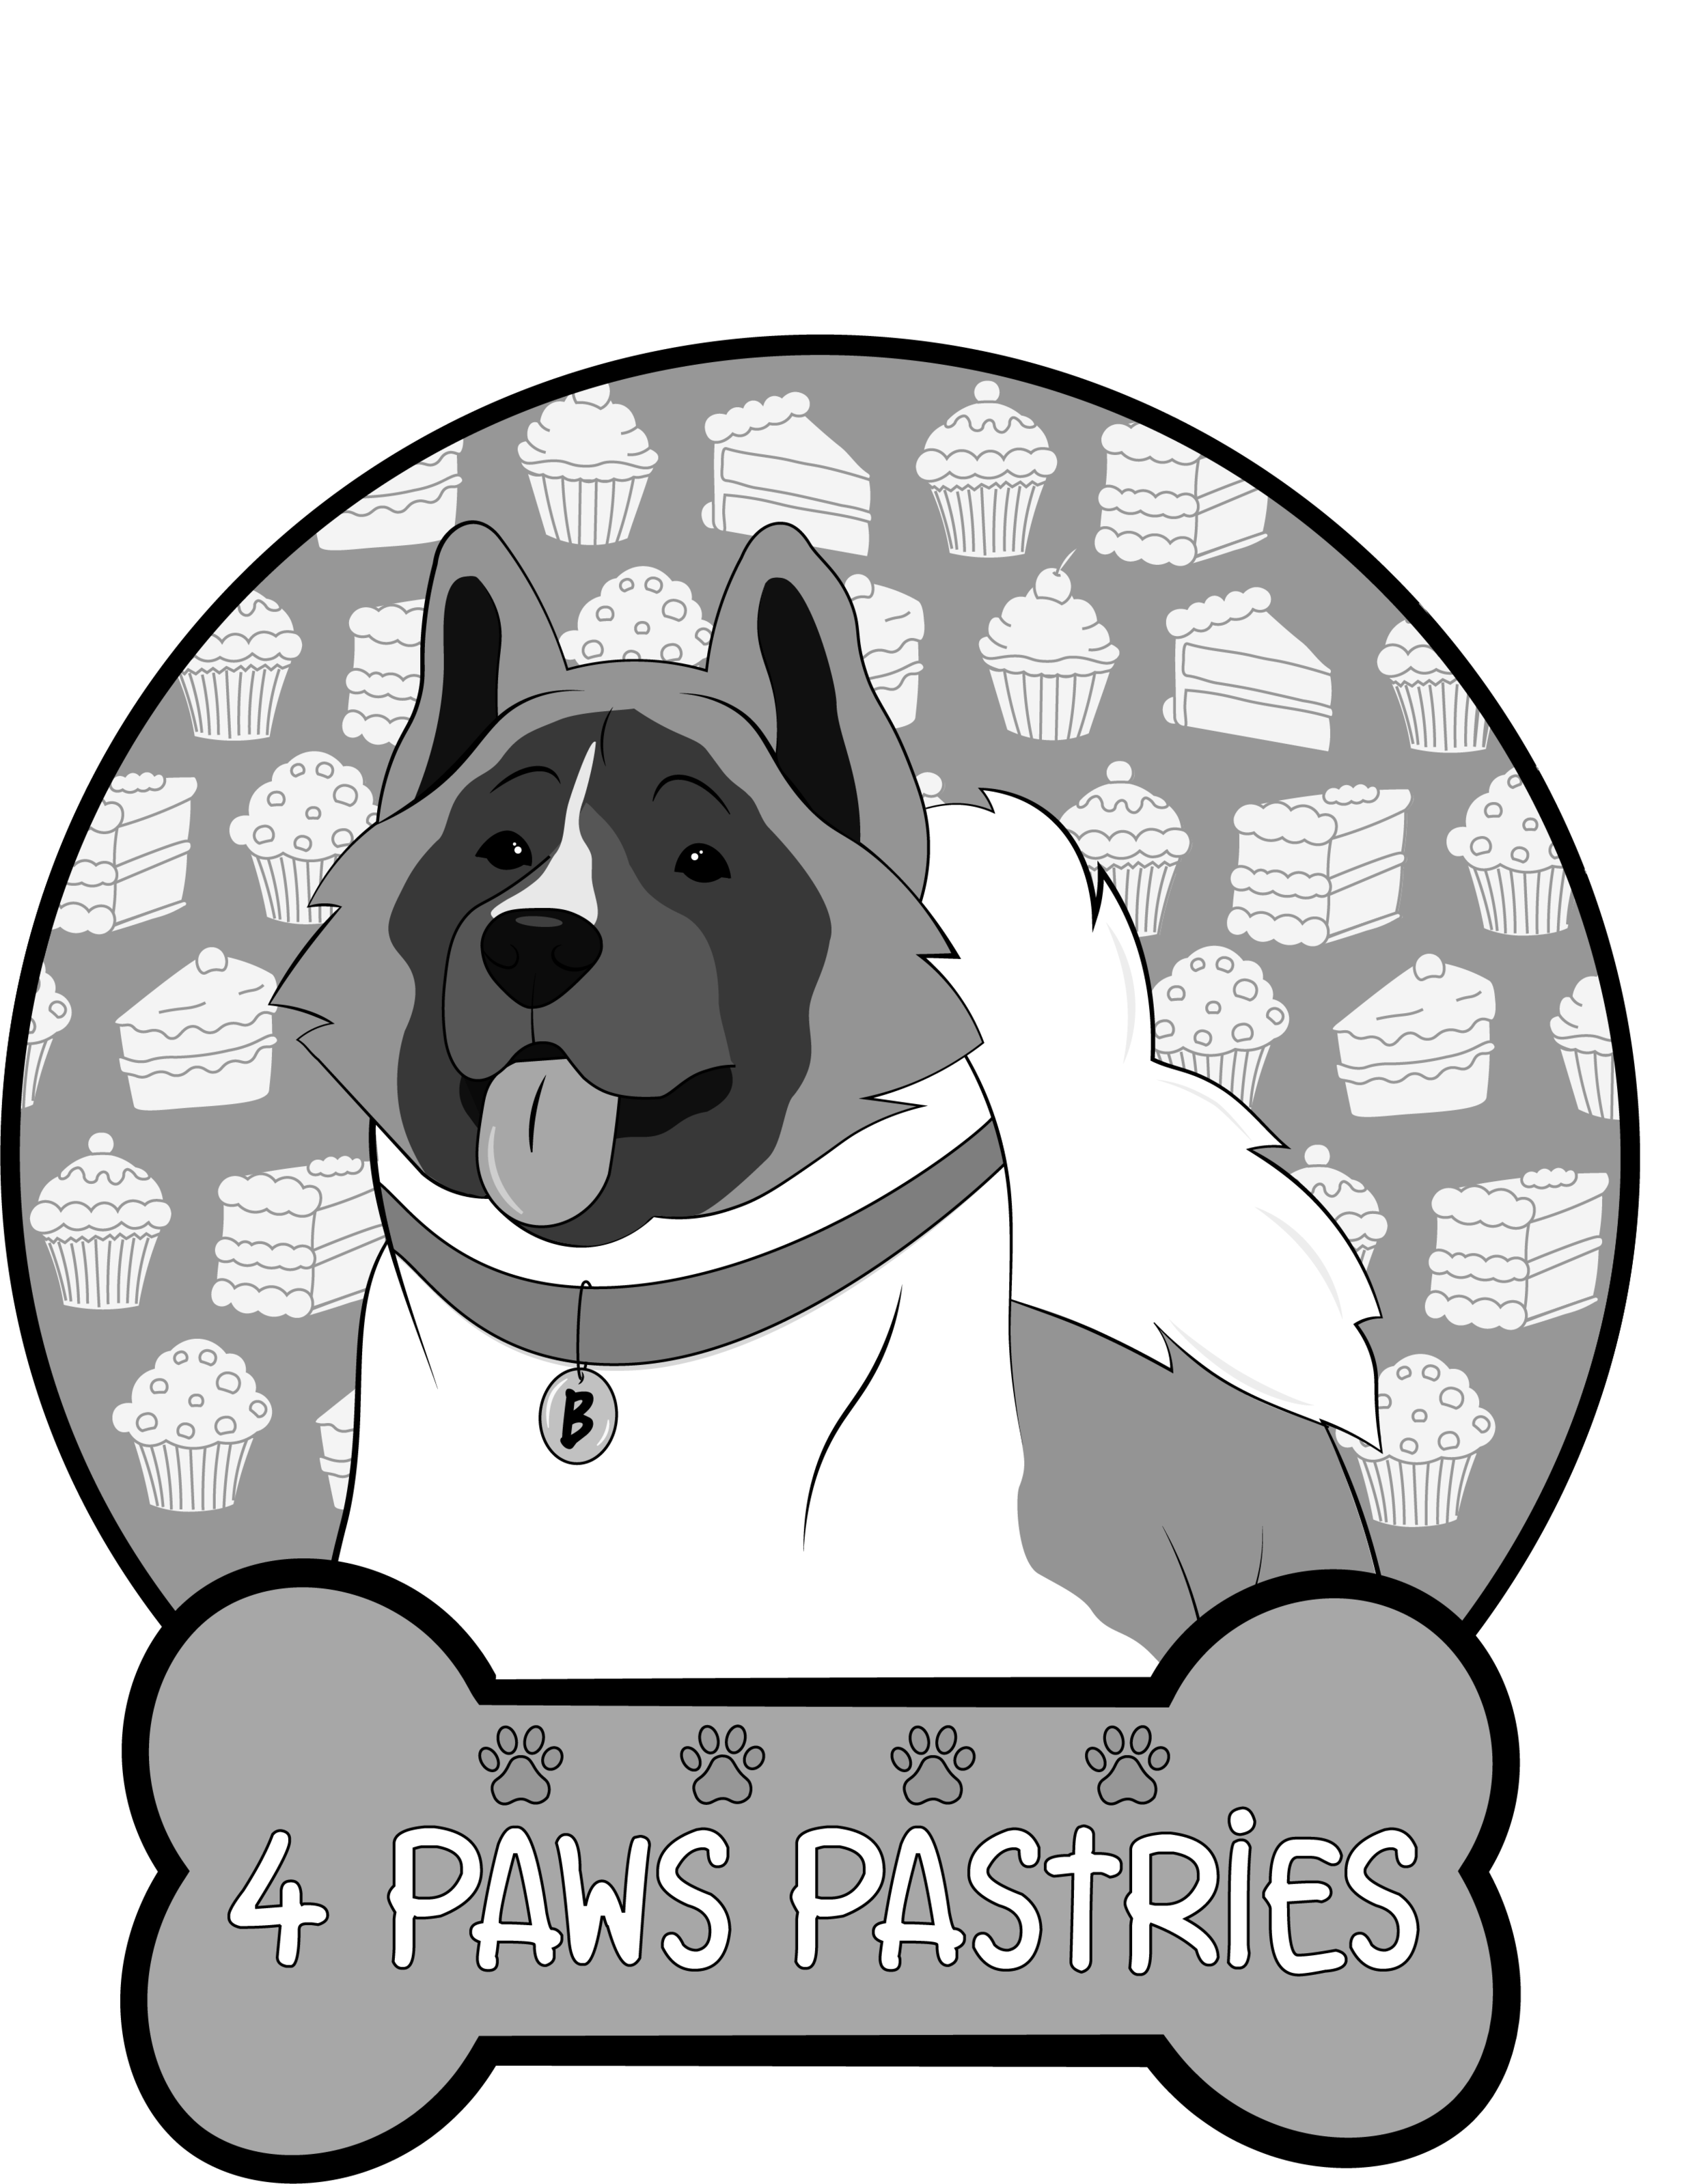 4pawspastrieslogo copy.png